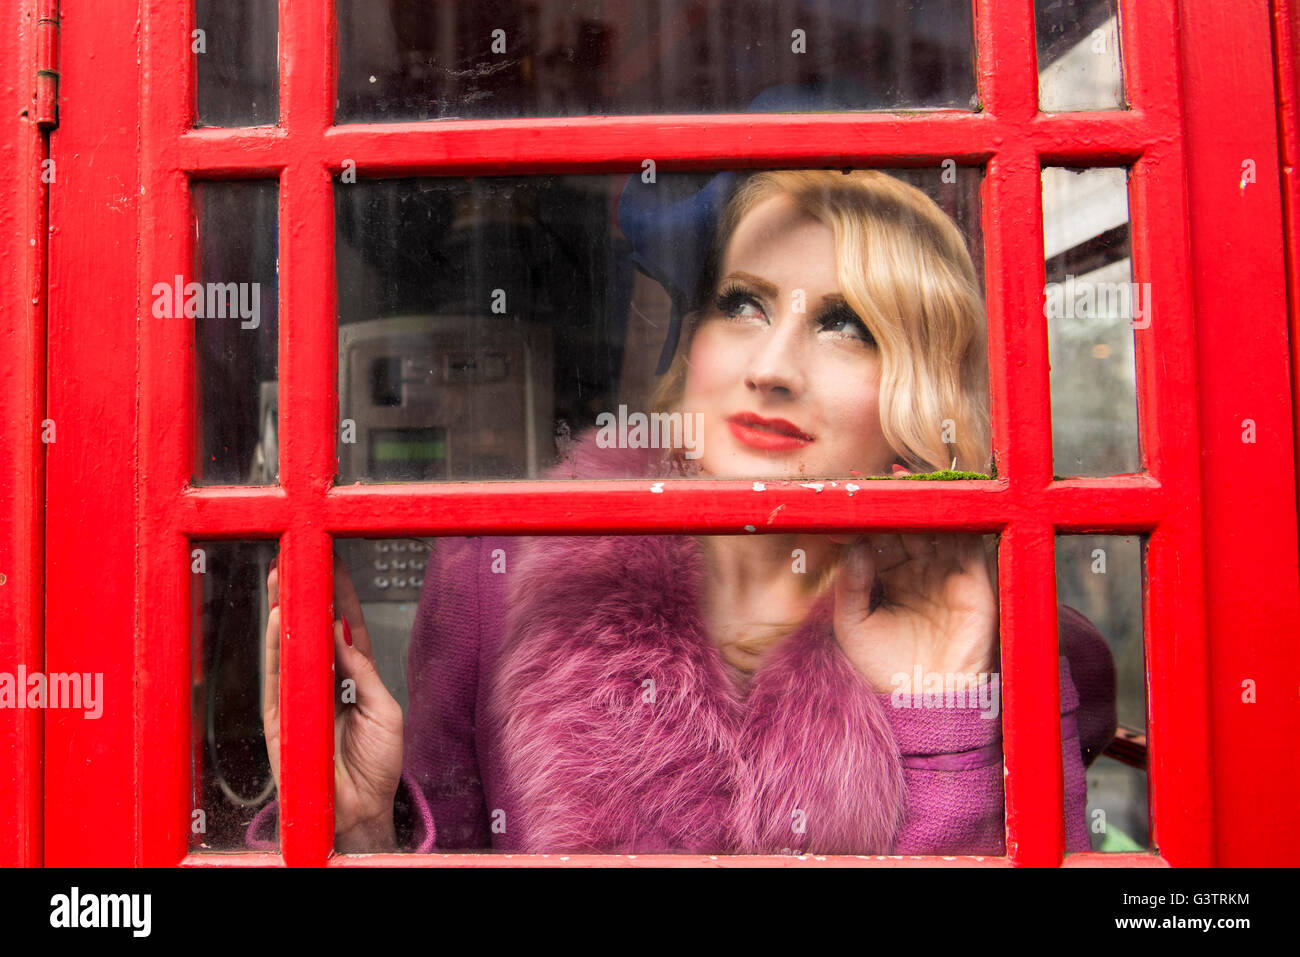 A stylish young woman dressed in 1930s style clothing standing in a traditional telephone kiosk on a London street. - Stock Image